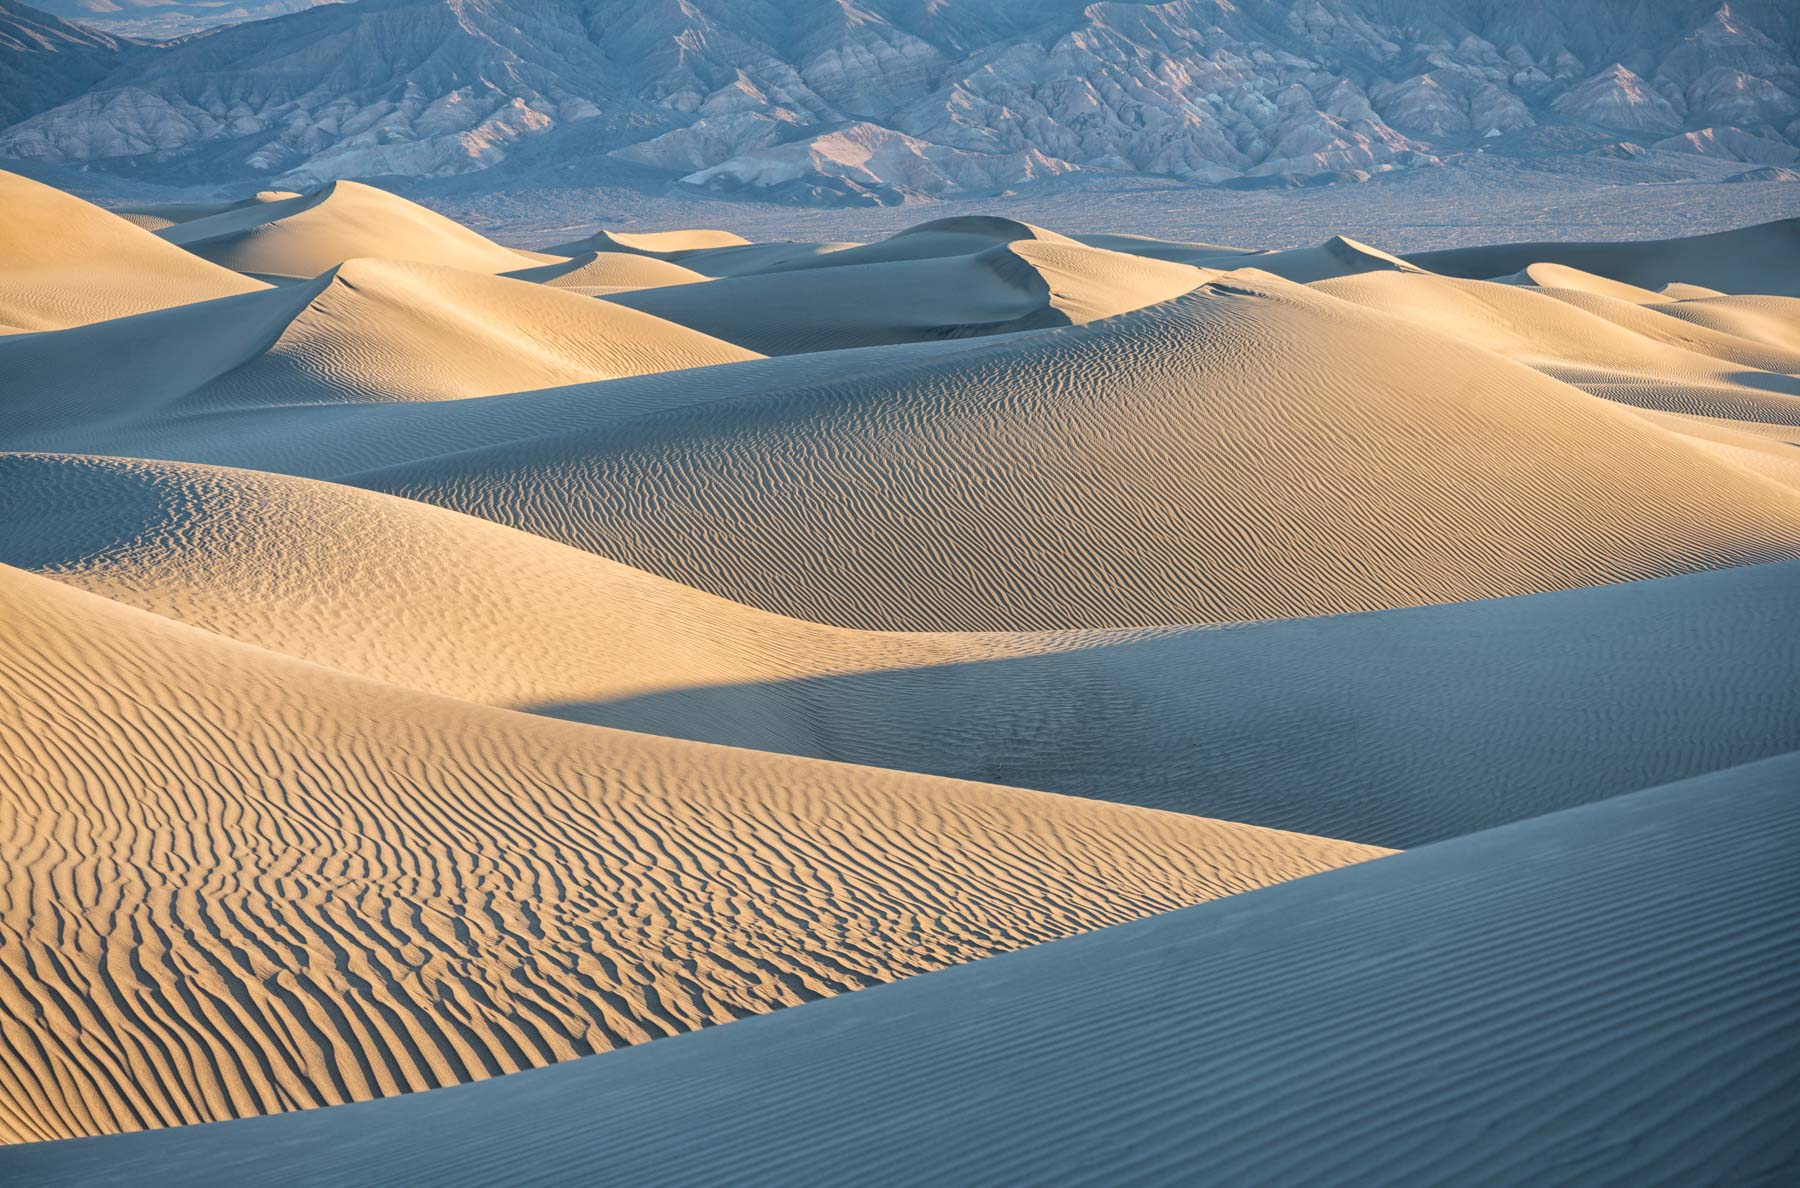 Mesquite Dunes at Dawn in Death Valley National Park, California